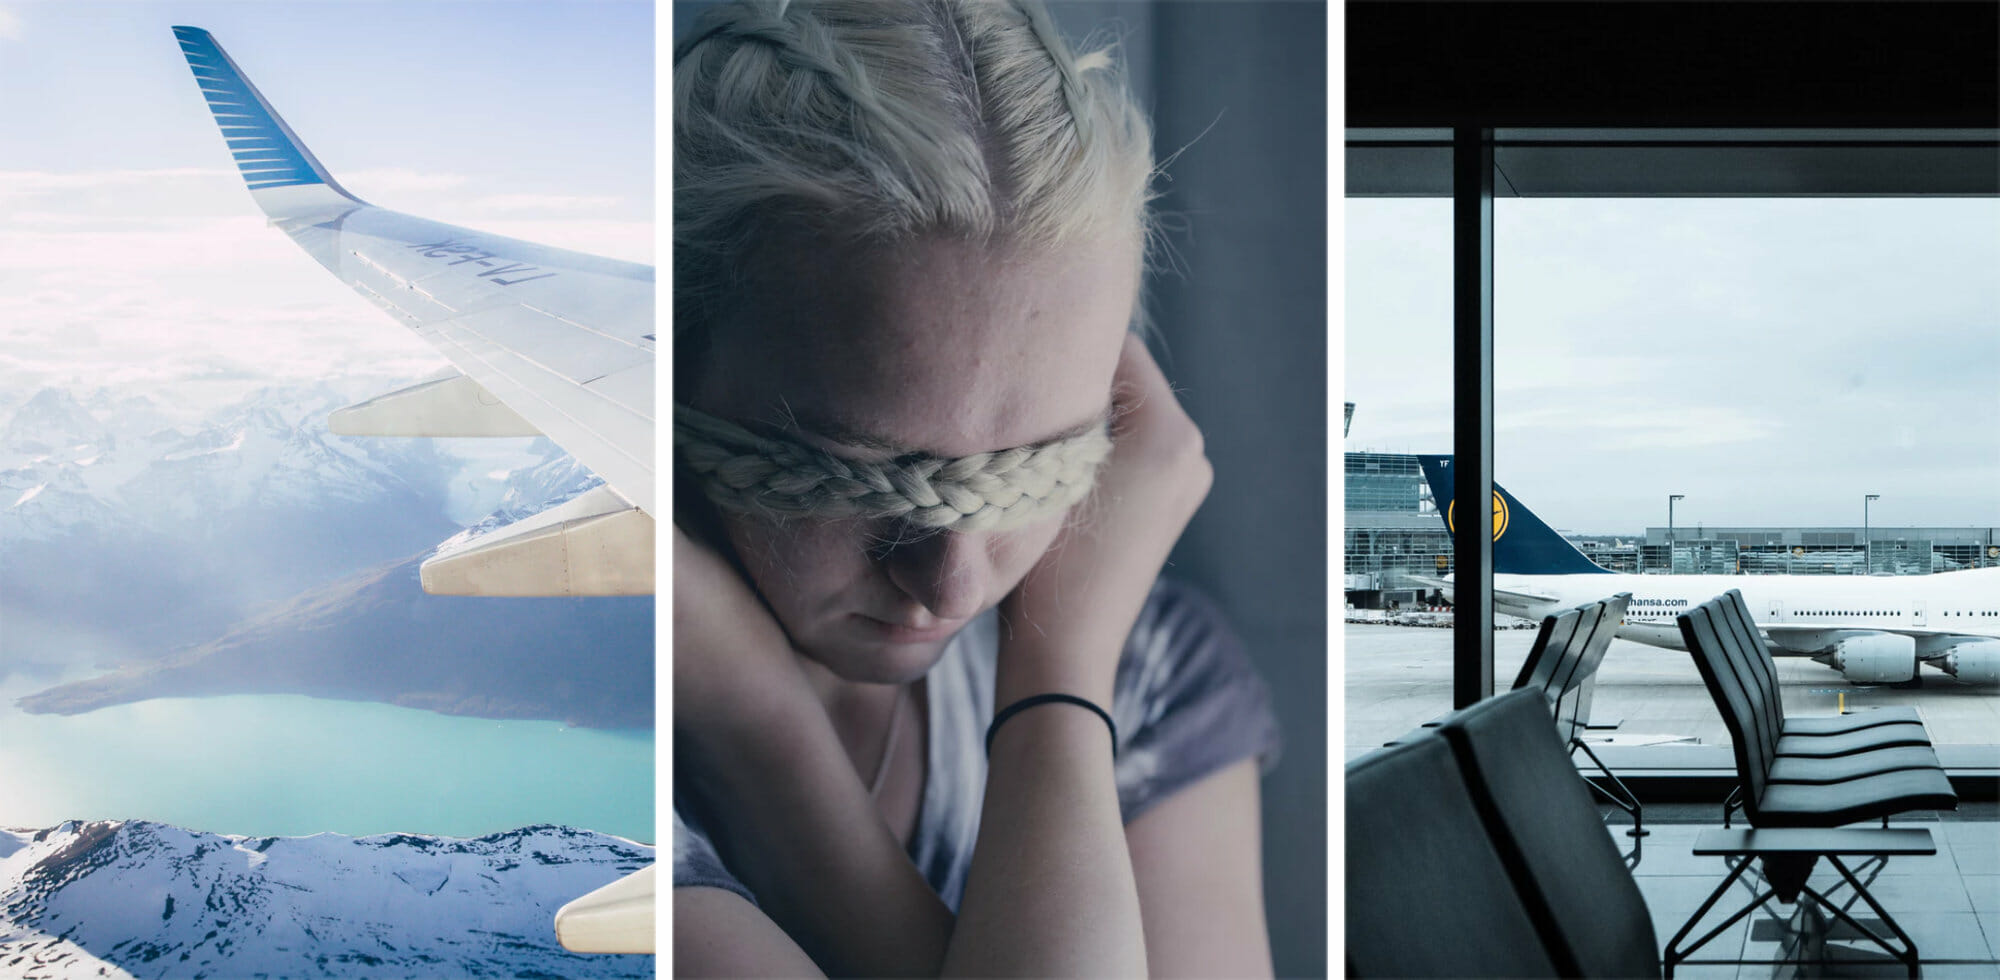 7 Types of Nervous Flyers and How to Spot Them